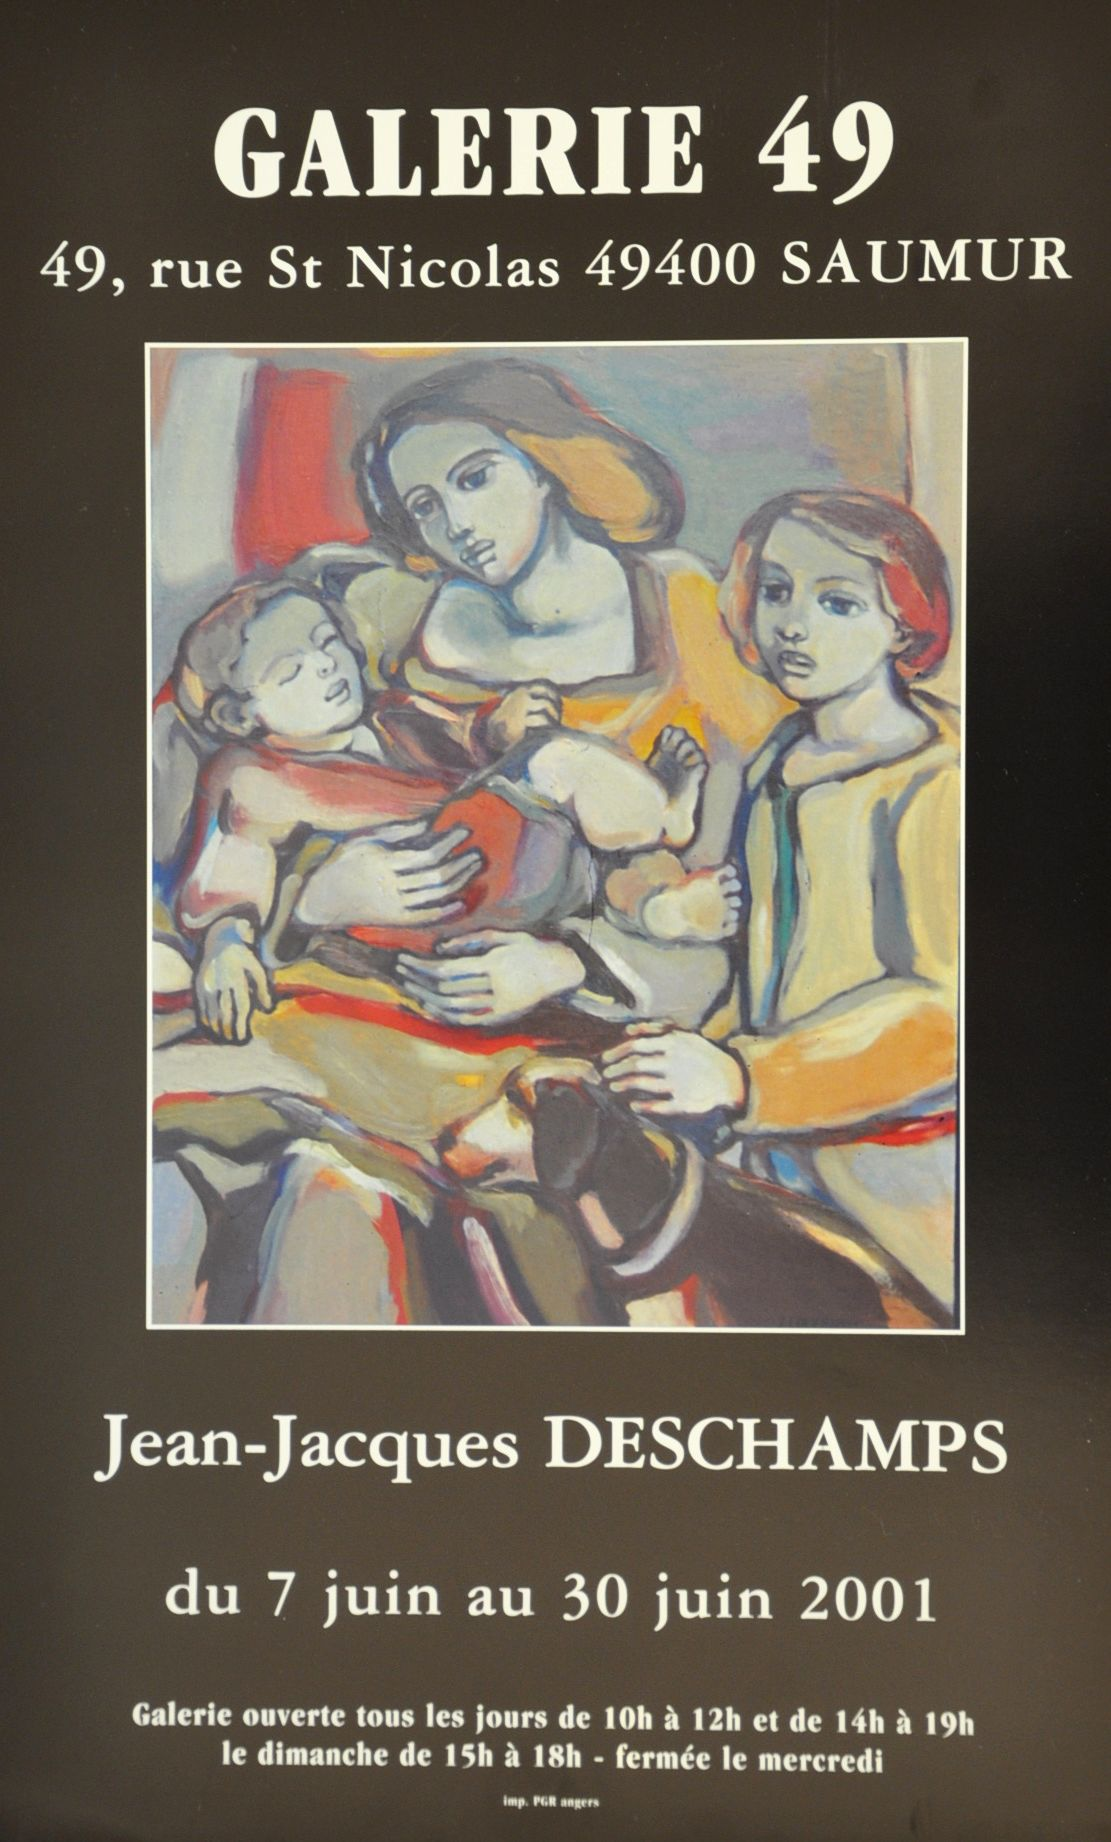 Exposition Jean-Jacques DESCHAMPS 2001 Galerie Toulouse Lauwers